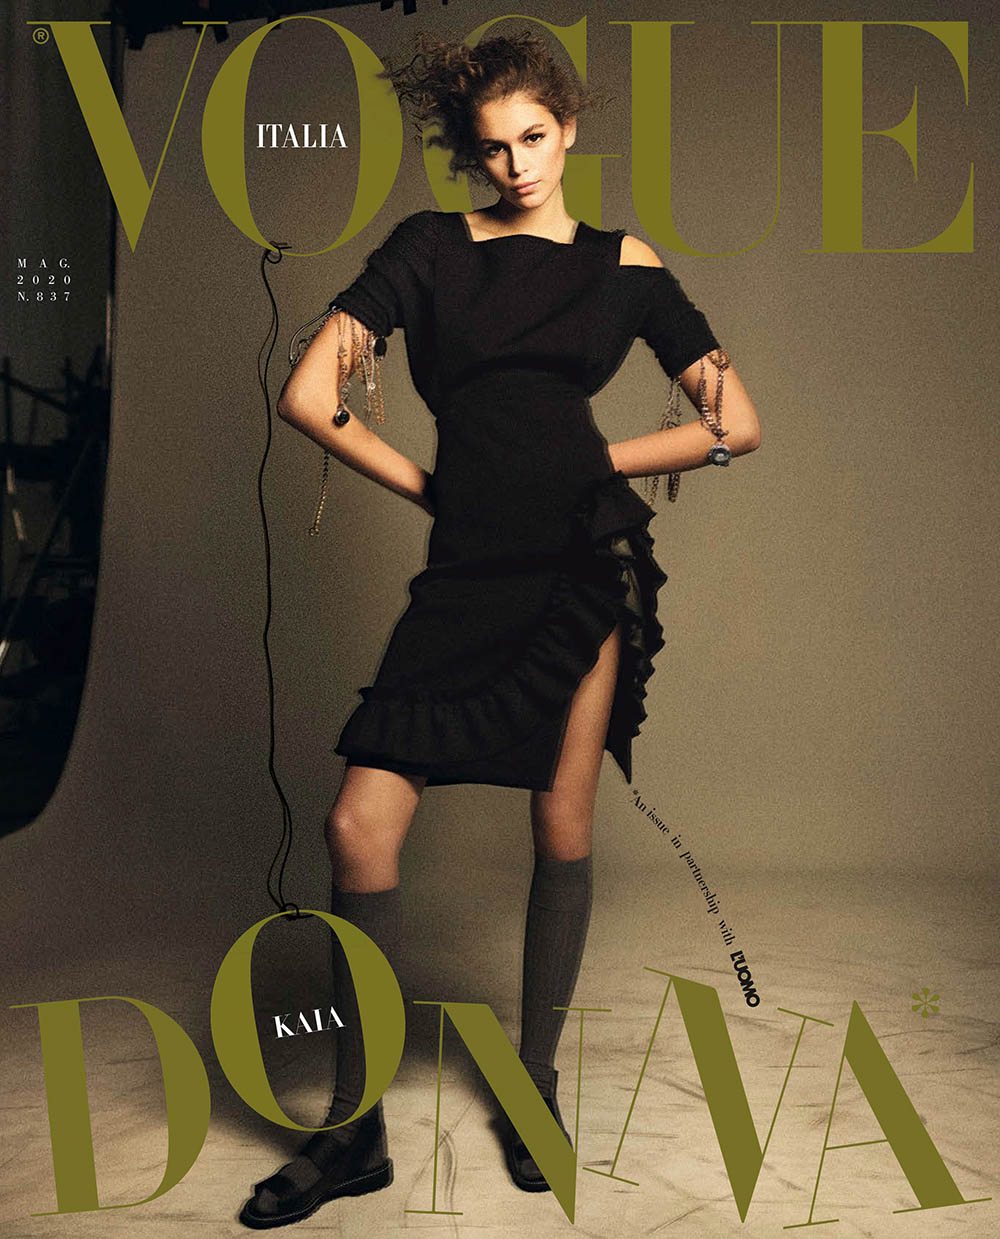 Kaia Gerber covers Vogue Italia and L'Uomo Vogue May 2020 by Karim Sadli